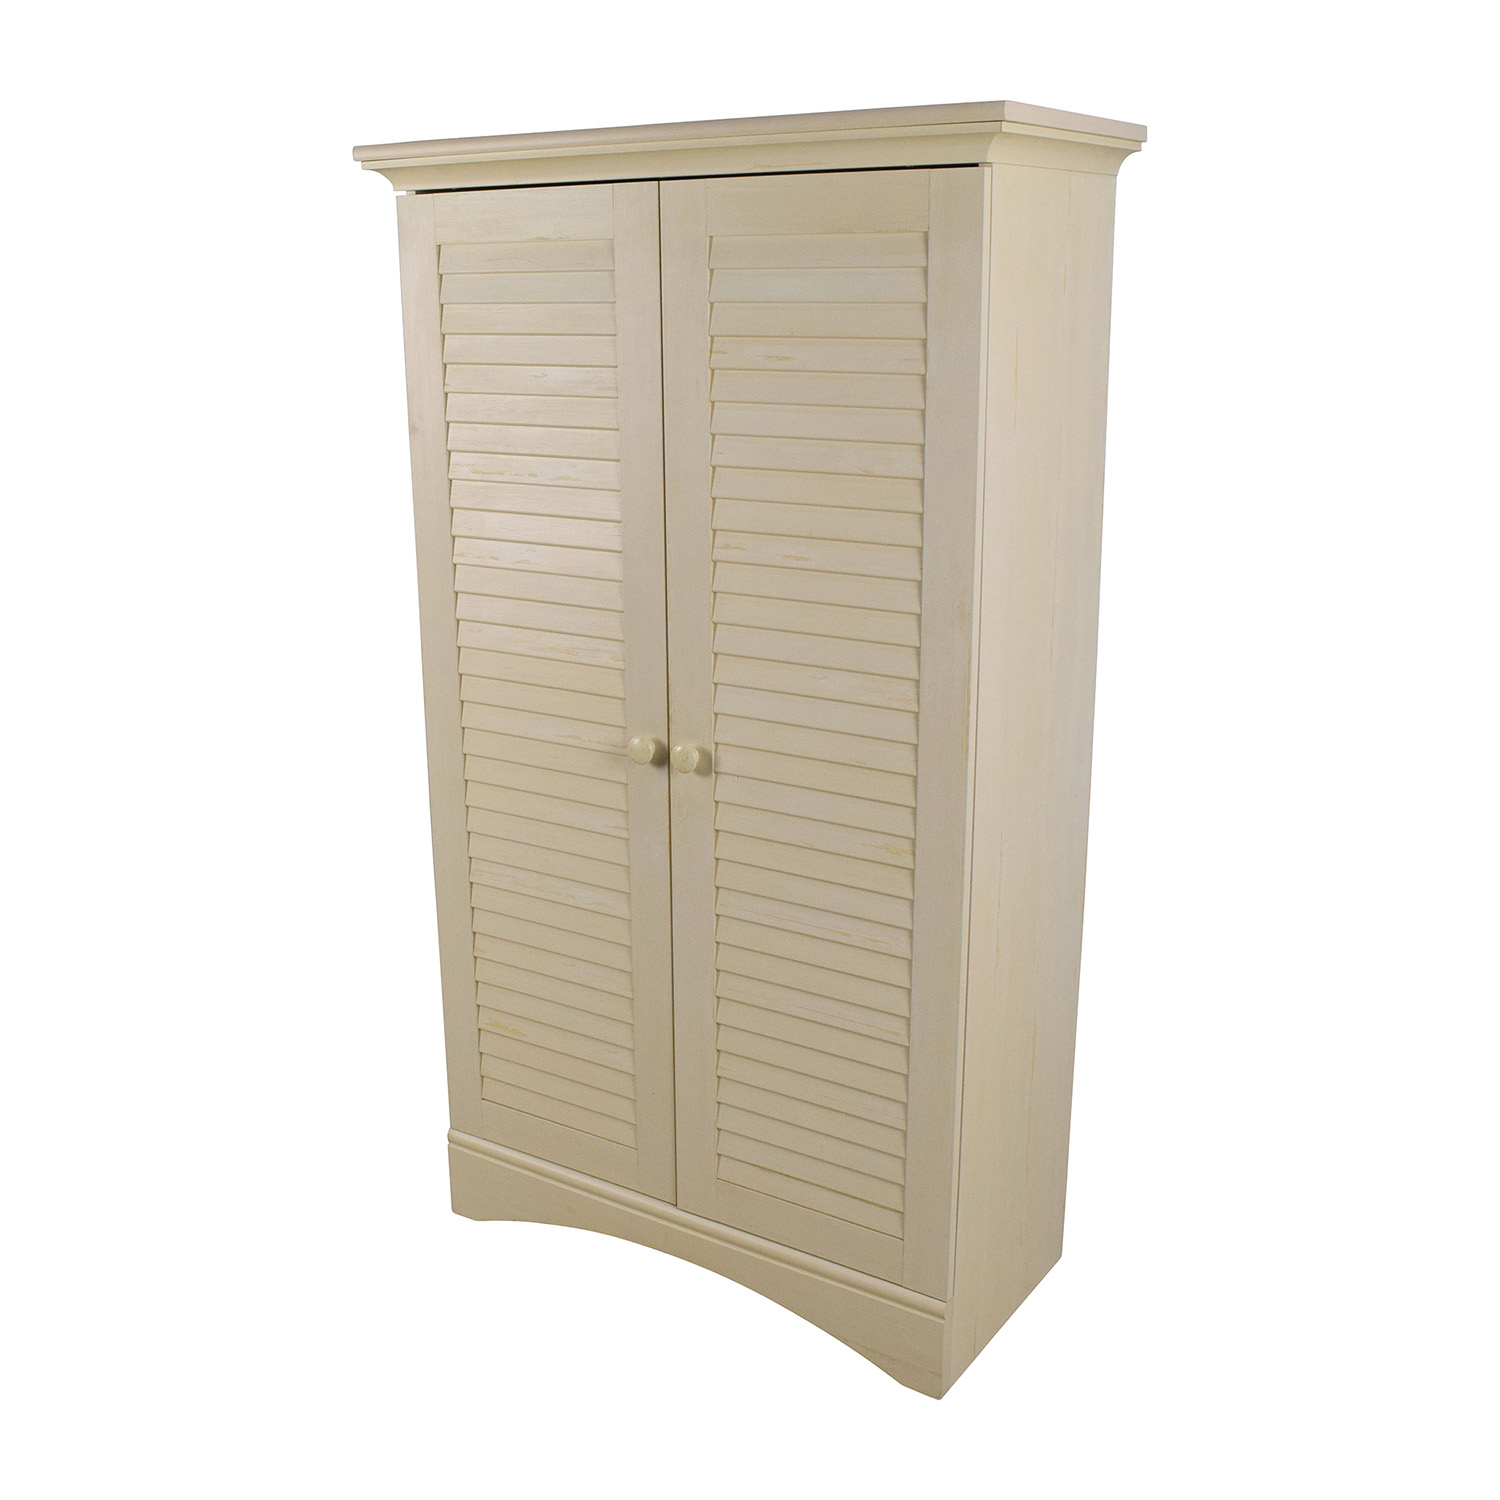 sauder sauder harbor view beige storage cabinet for sale - Sauder Storage Cabinet